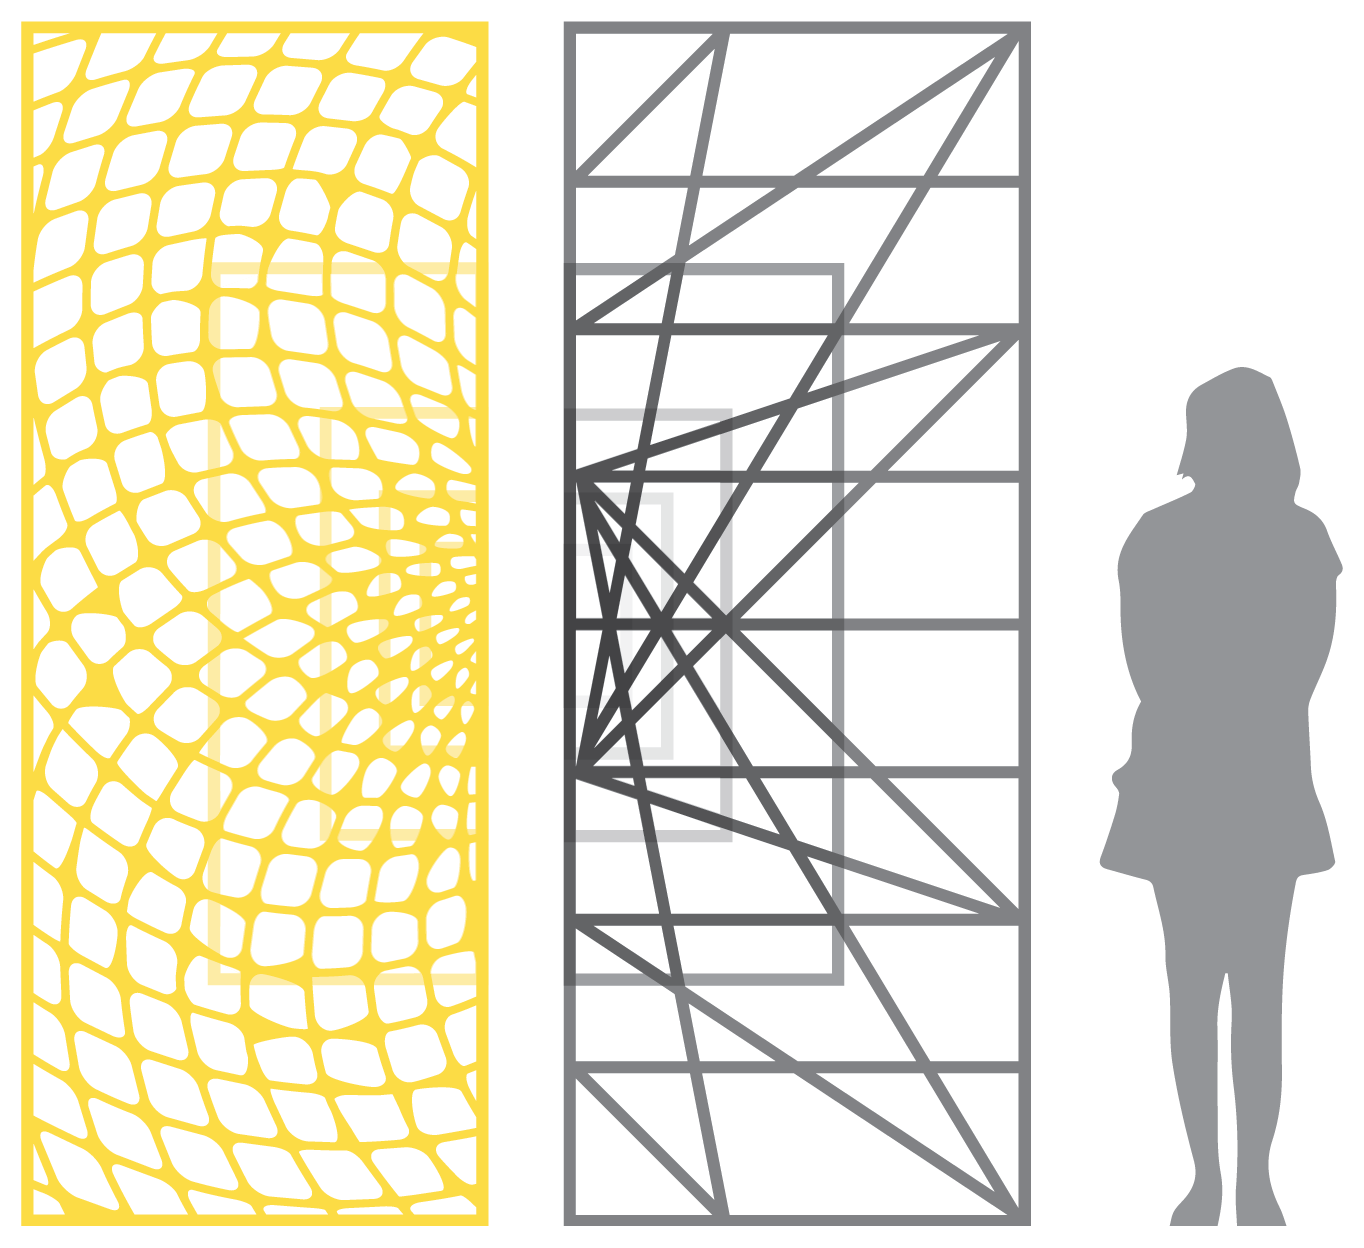 series of overlapping panels